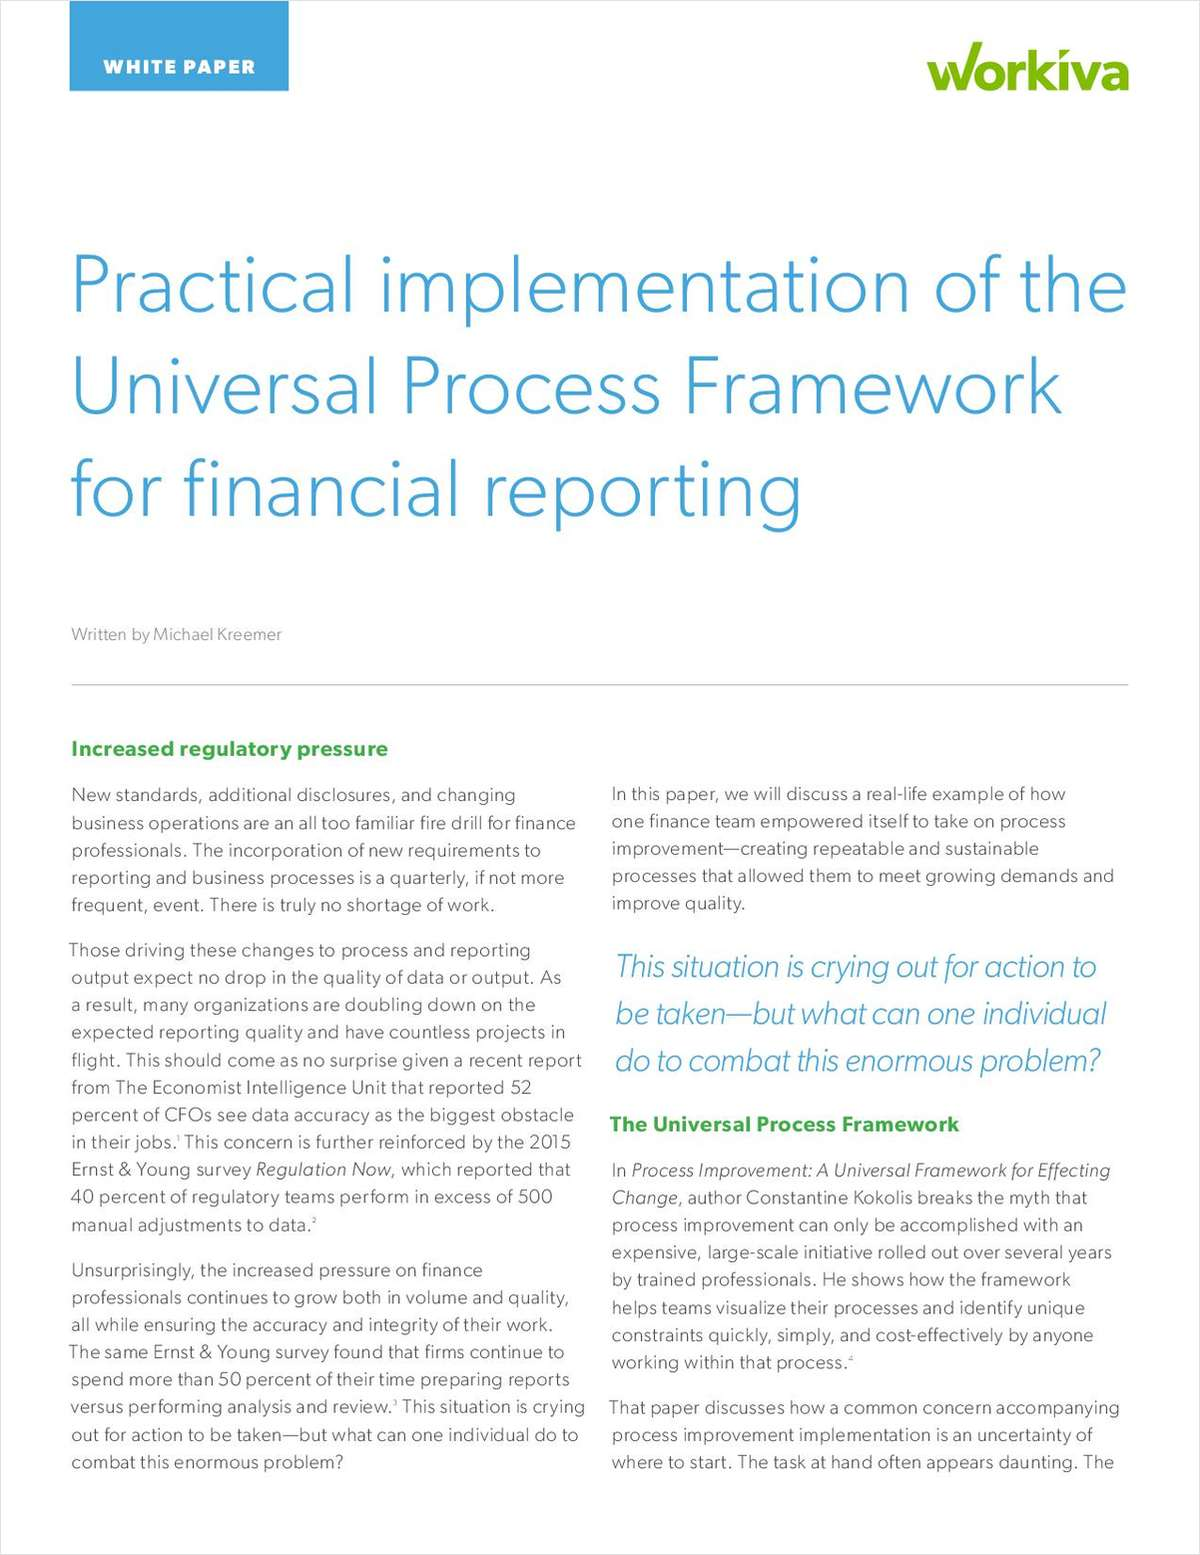 Process Improvement: A Practical Application of the Universal Framework